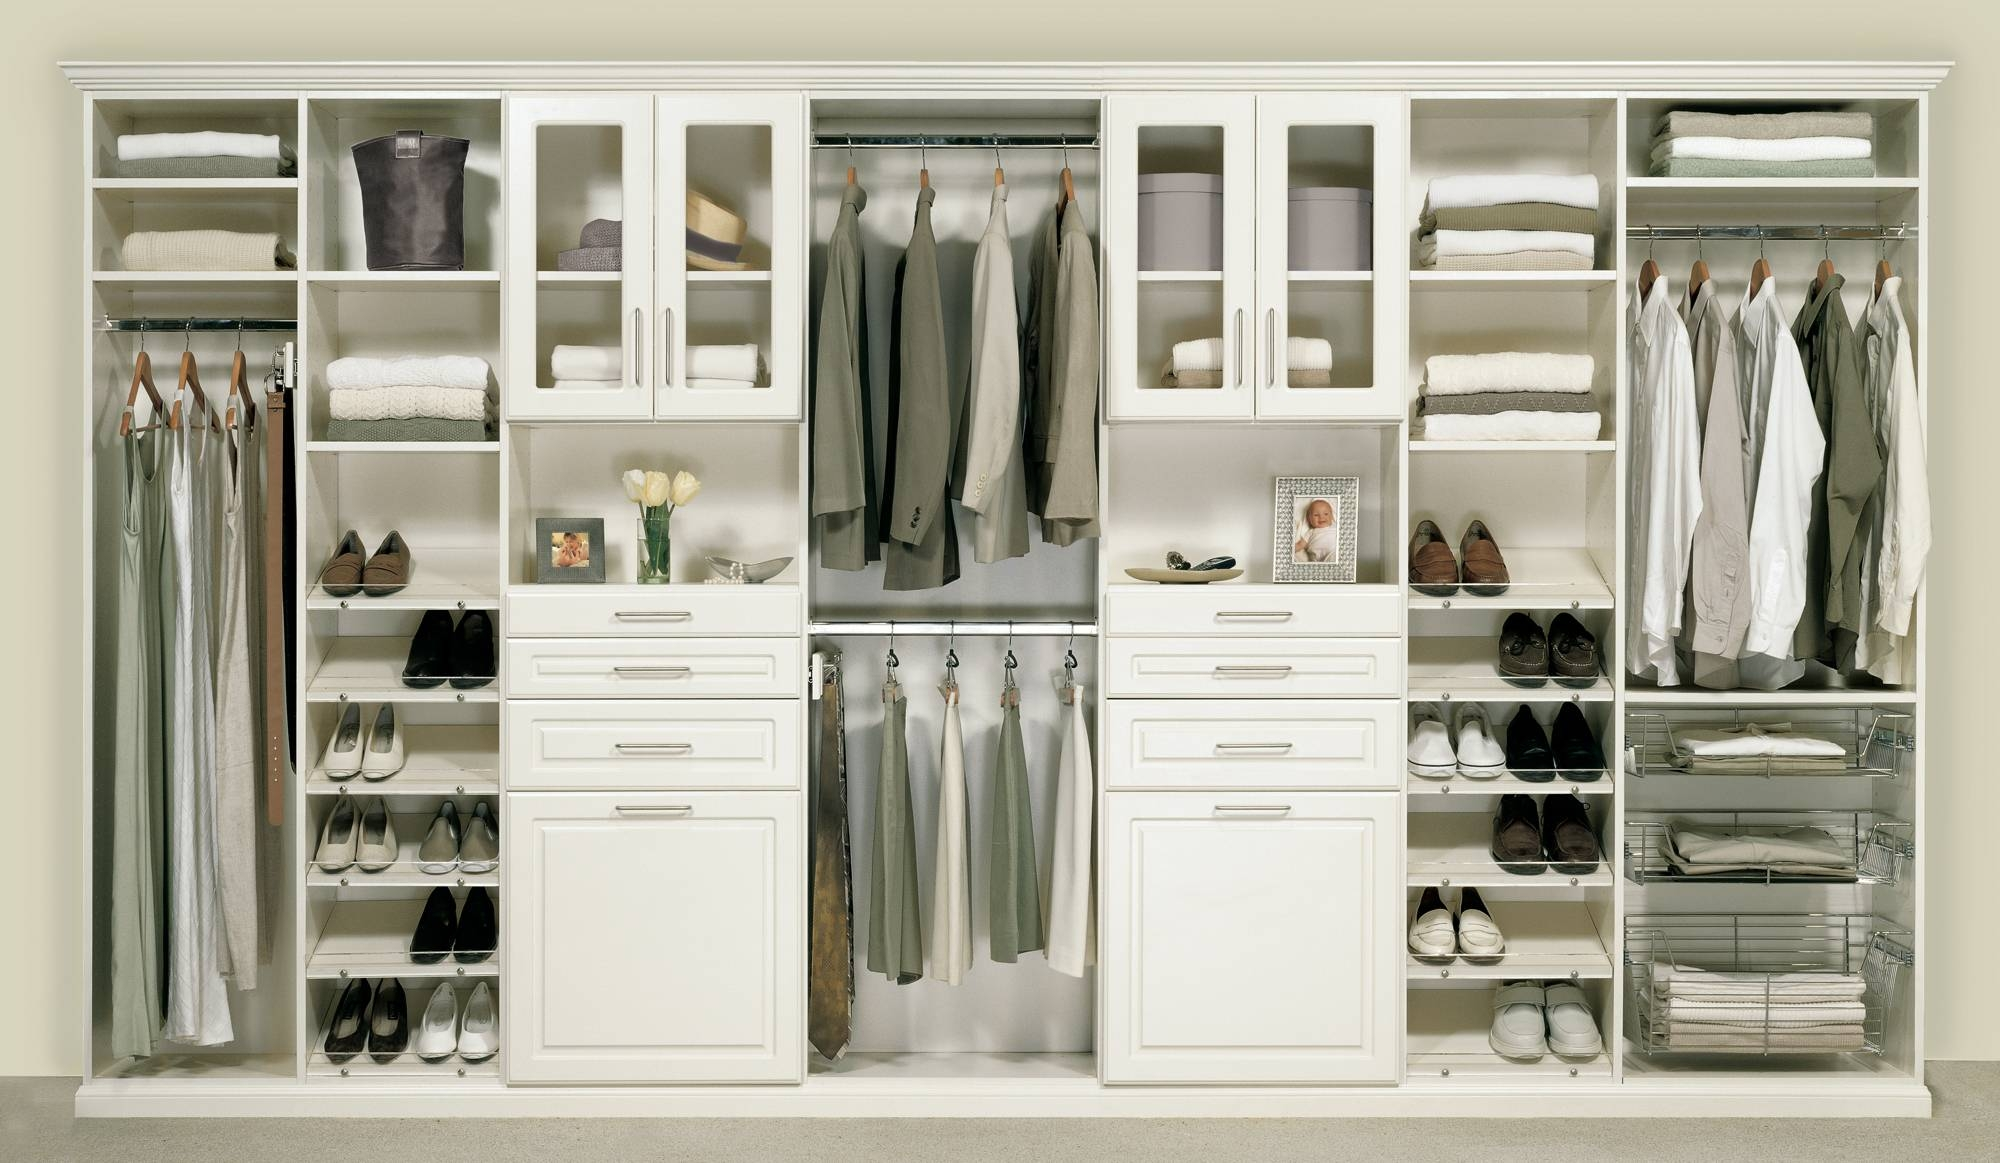 Ikea Closet Planner Portable Wardrobe Appealing Storage System with regard to Wardrobe Drawers and Shelves Ikea (Image 15 of 30)